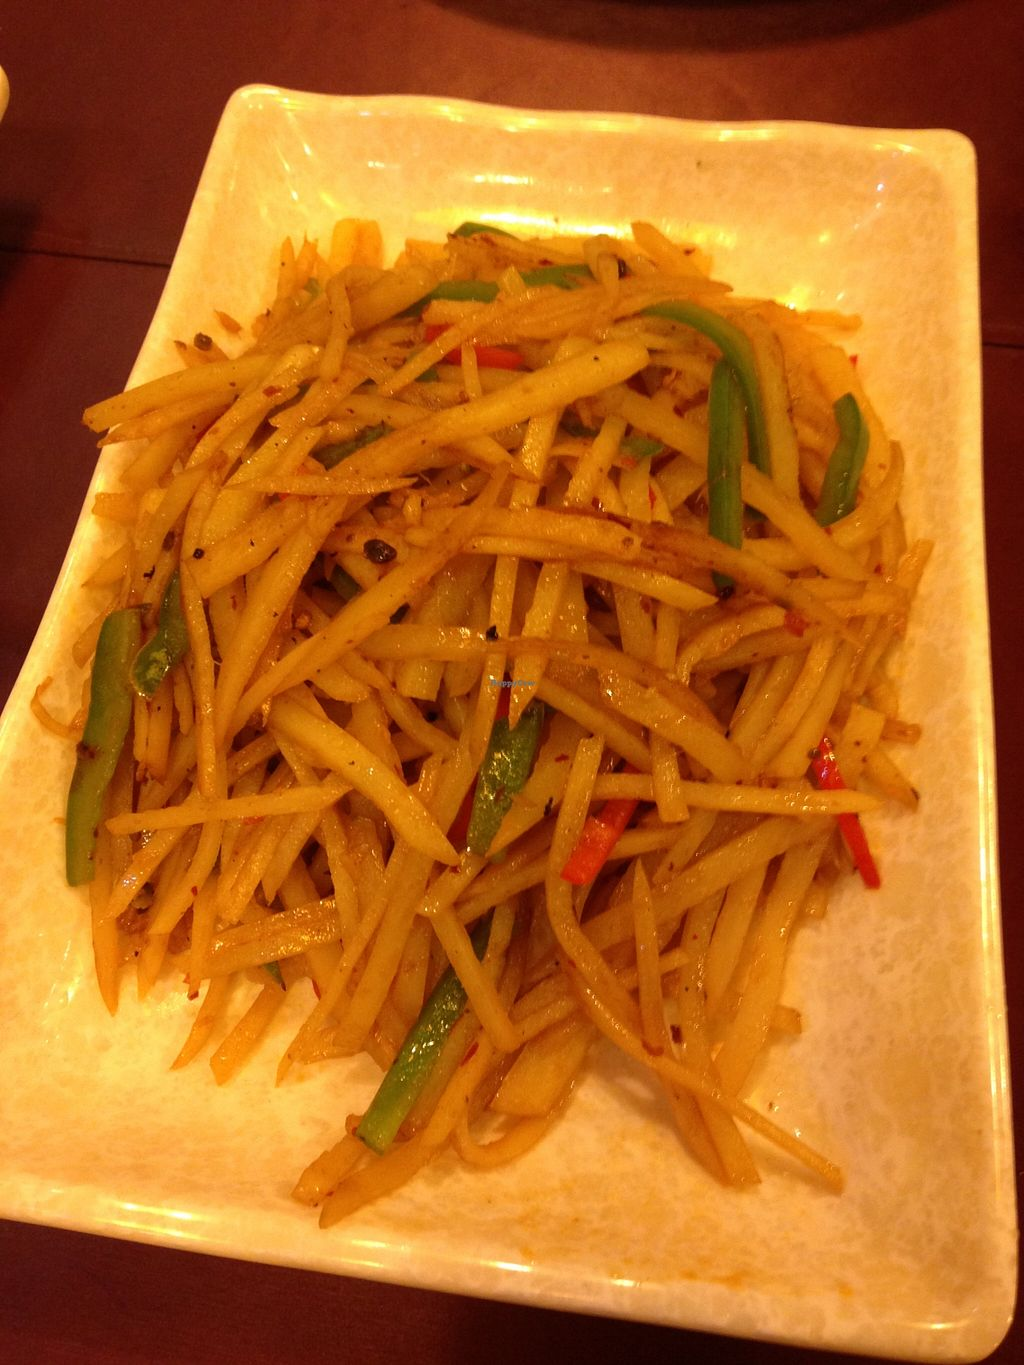 """Photo of Veggie Family  by <a href=""""/members/profile/Stevie"""">Stevie</a> <br/>http://www.meetup.com/Meat-Free-Hong-Kong/events/228842996/ pic 10 <br/> February 20, 2016  - <a href='/contact/abuse/image/53426/136959'>Report</a>"""